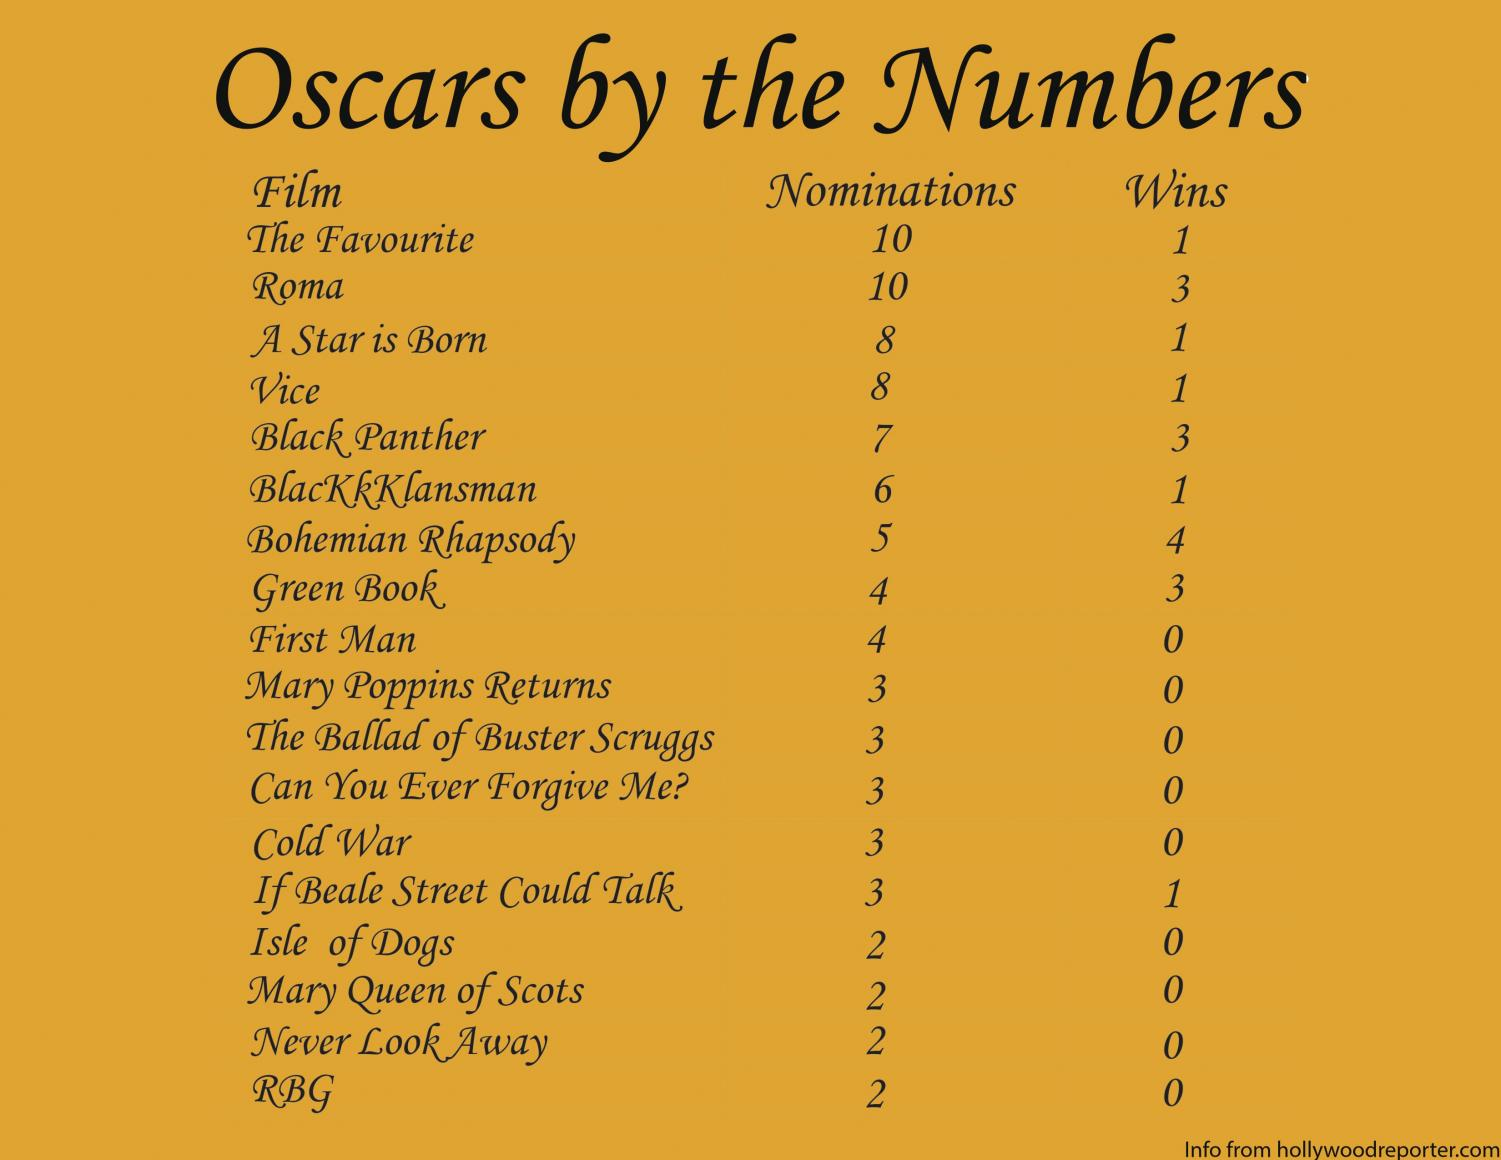 A rundown of all the nominations and wins for this year's Academy Awards.